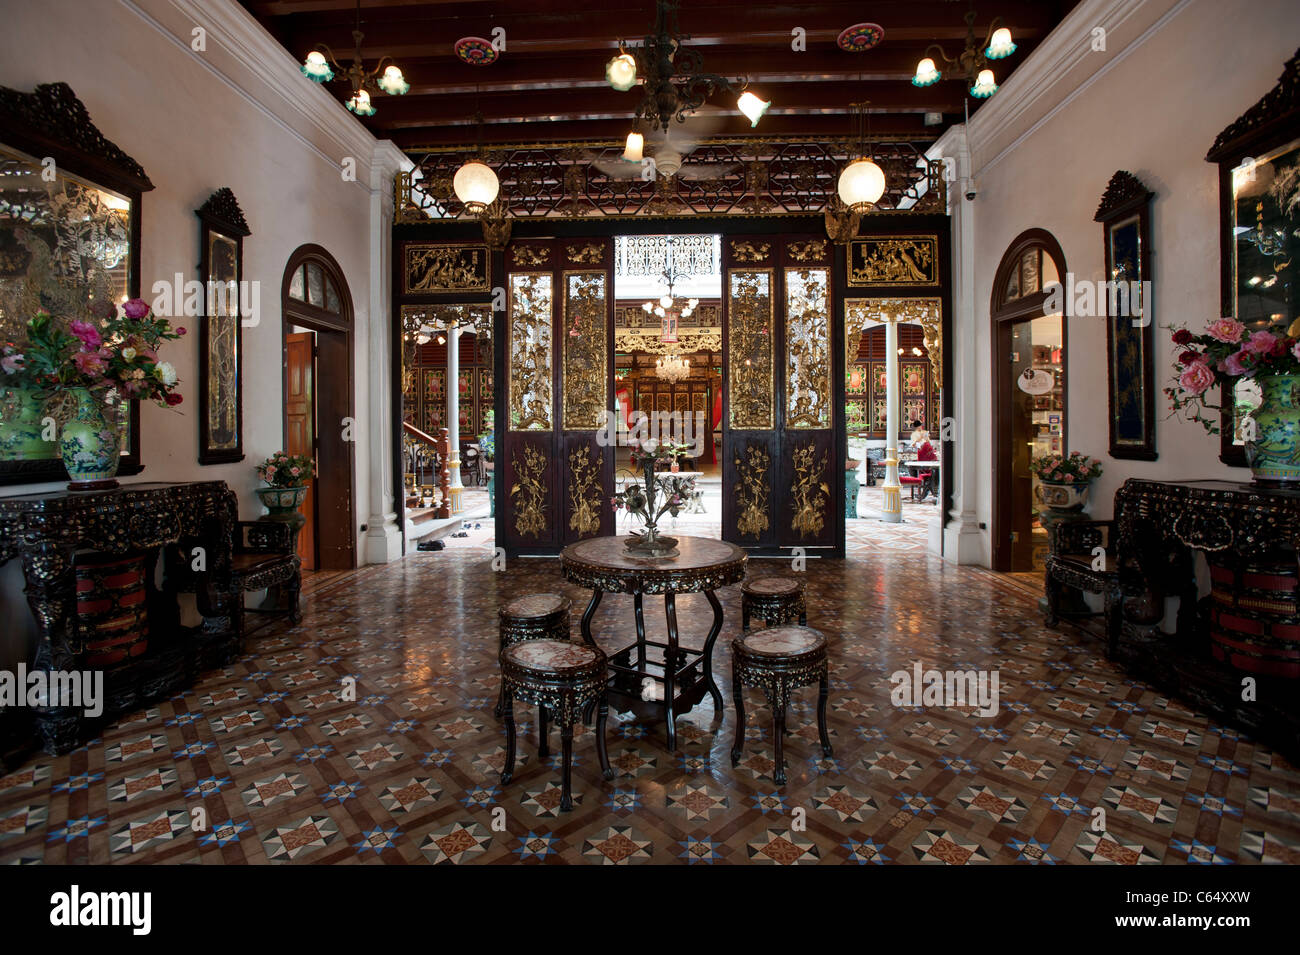 Front Hall Reception Room in the Peranakan Mansion, George Town, Penang Malaysia - Stock Image